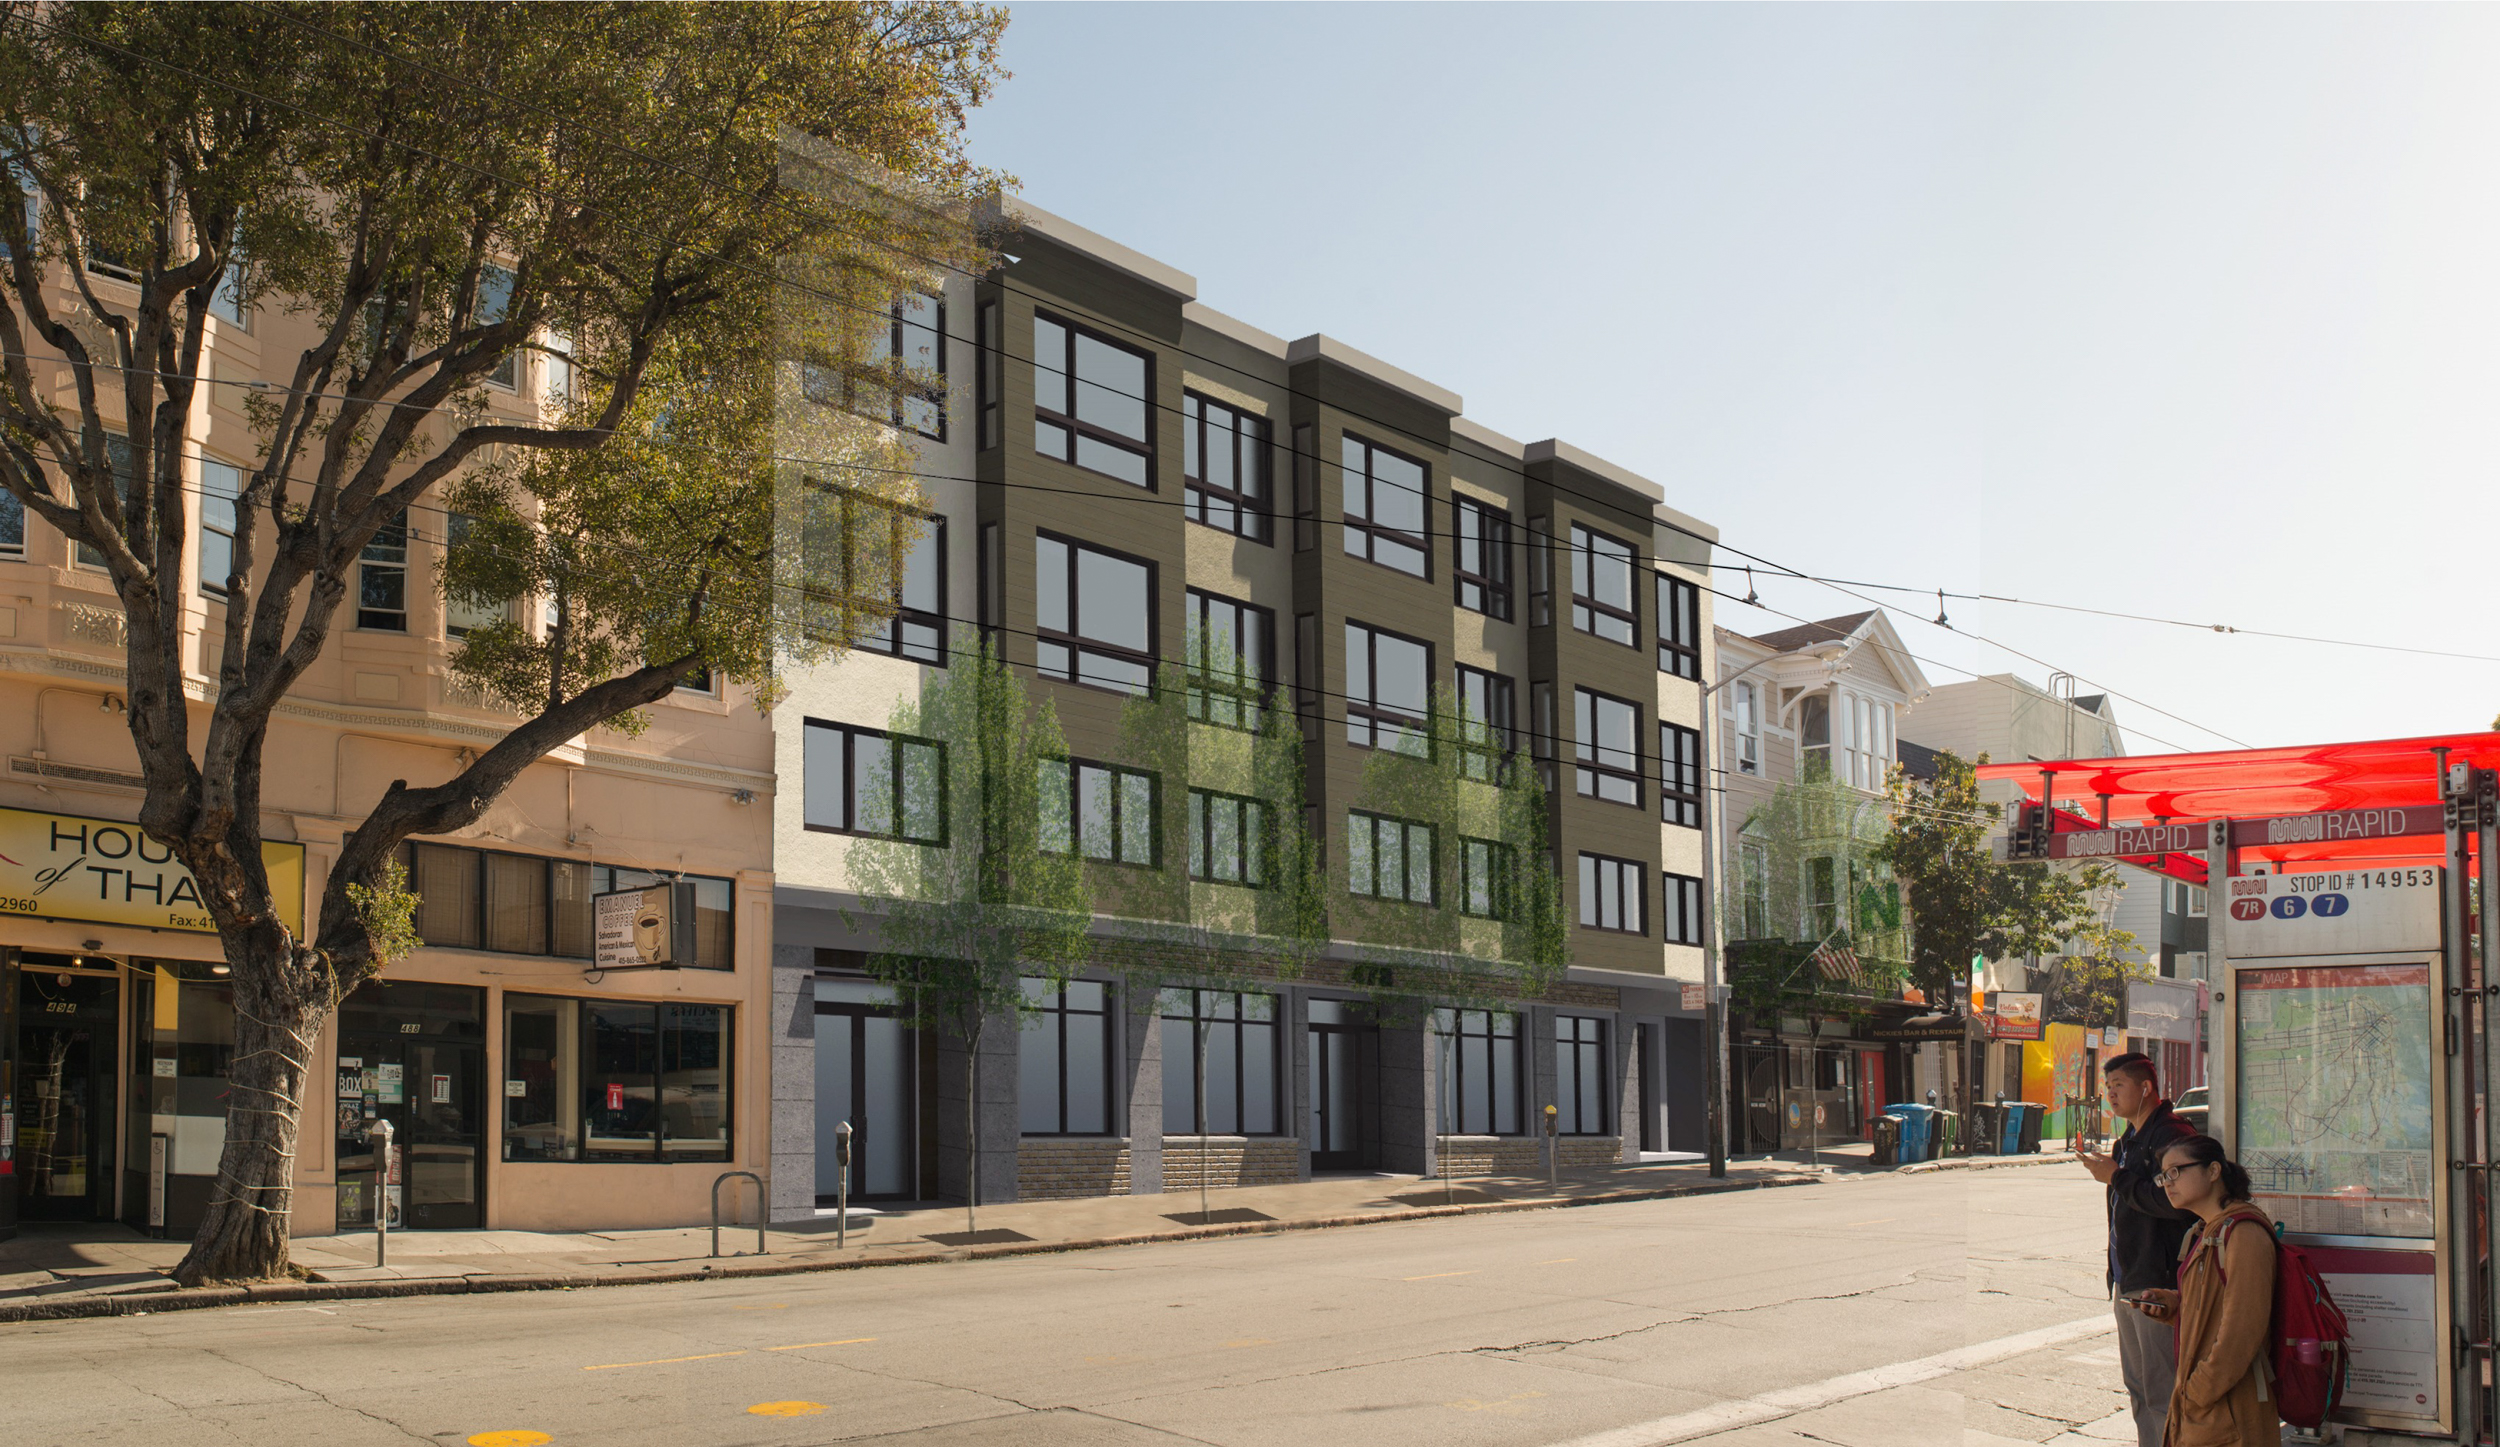 478-484 Haight Street looking northeast, rendering by Schaub Ly Architects